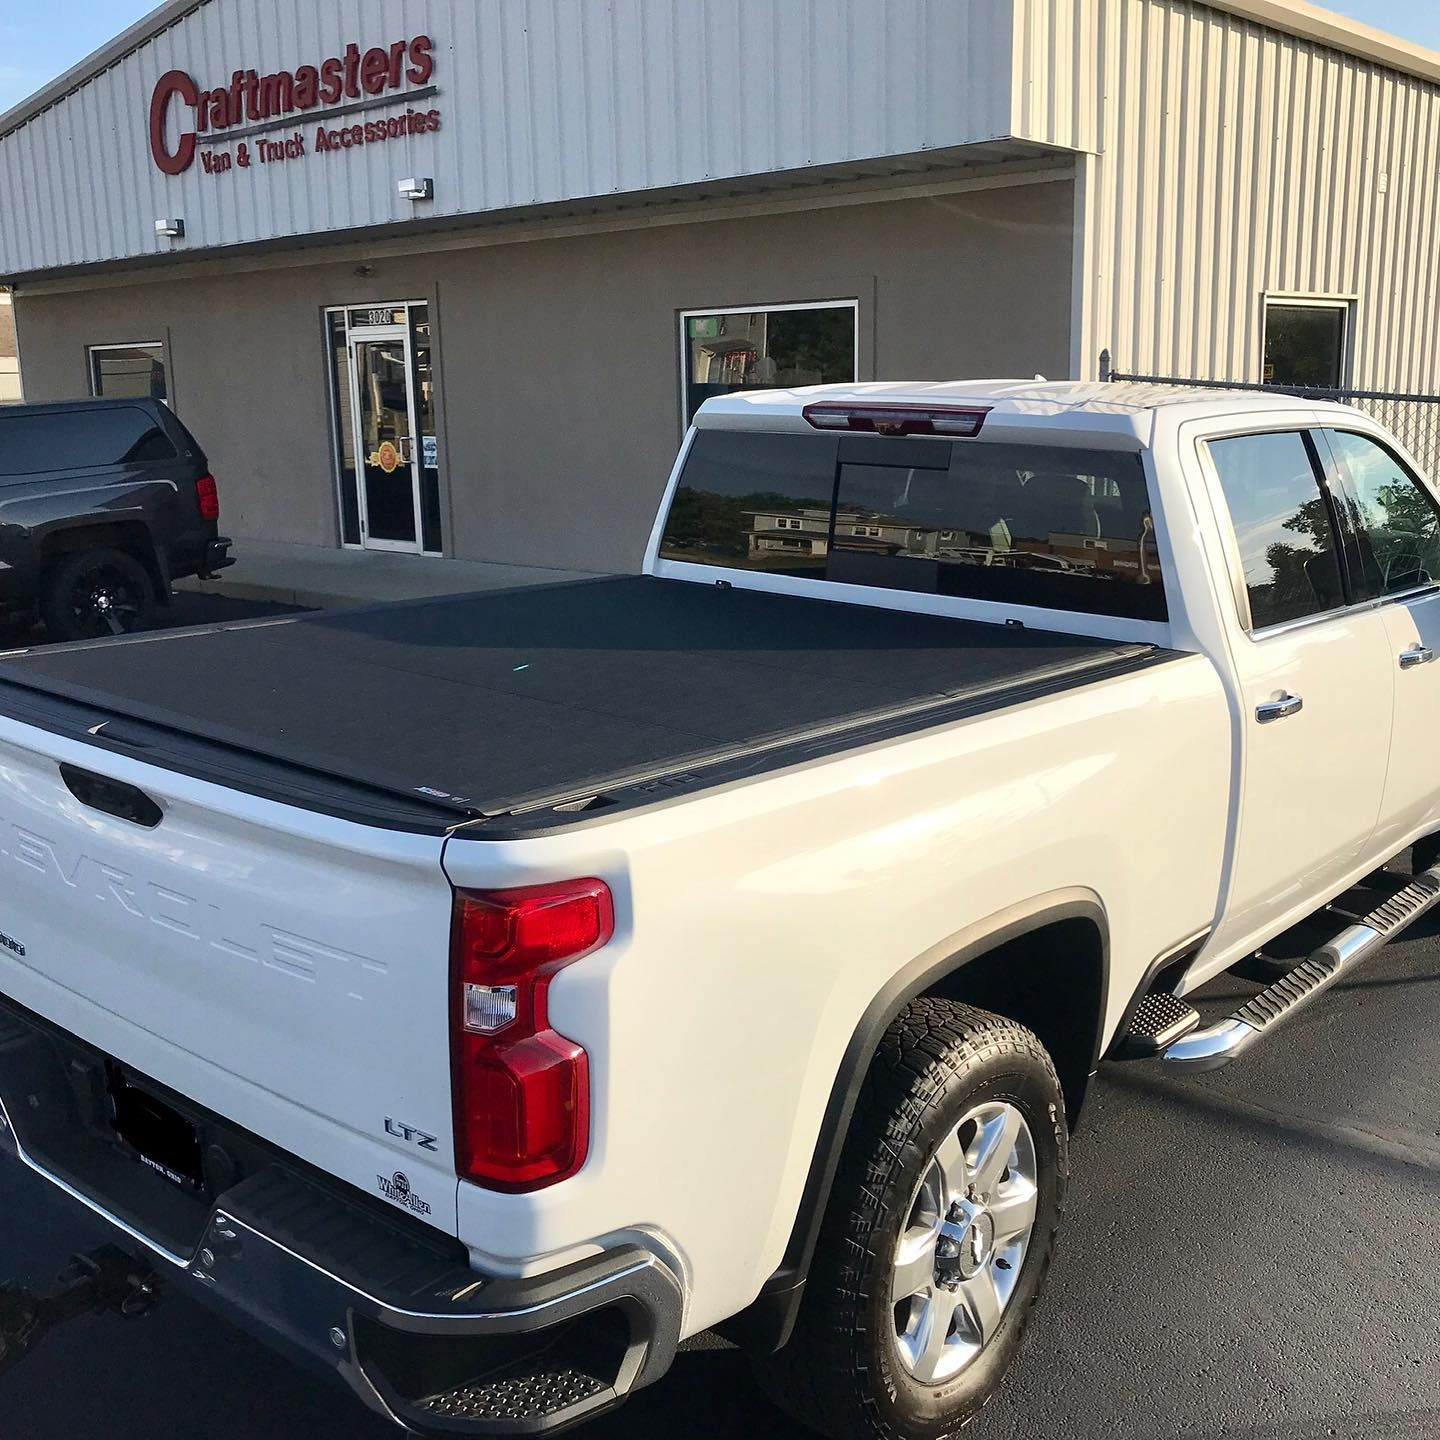 The New Extang Exceed tonneau cover on a 2020 Silverado